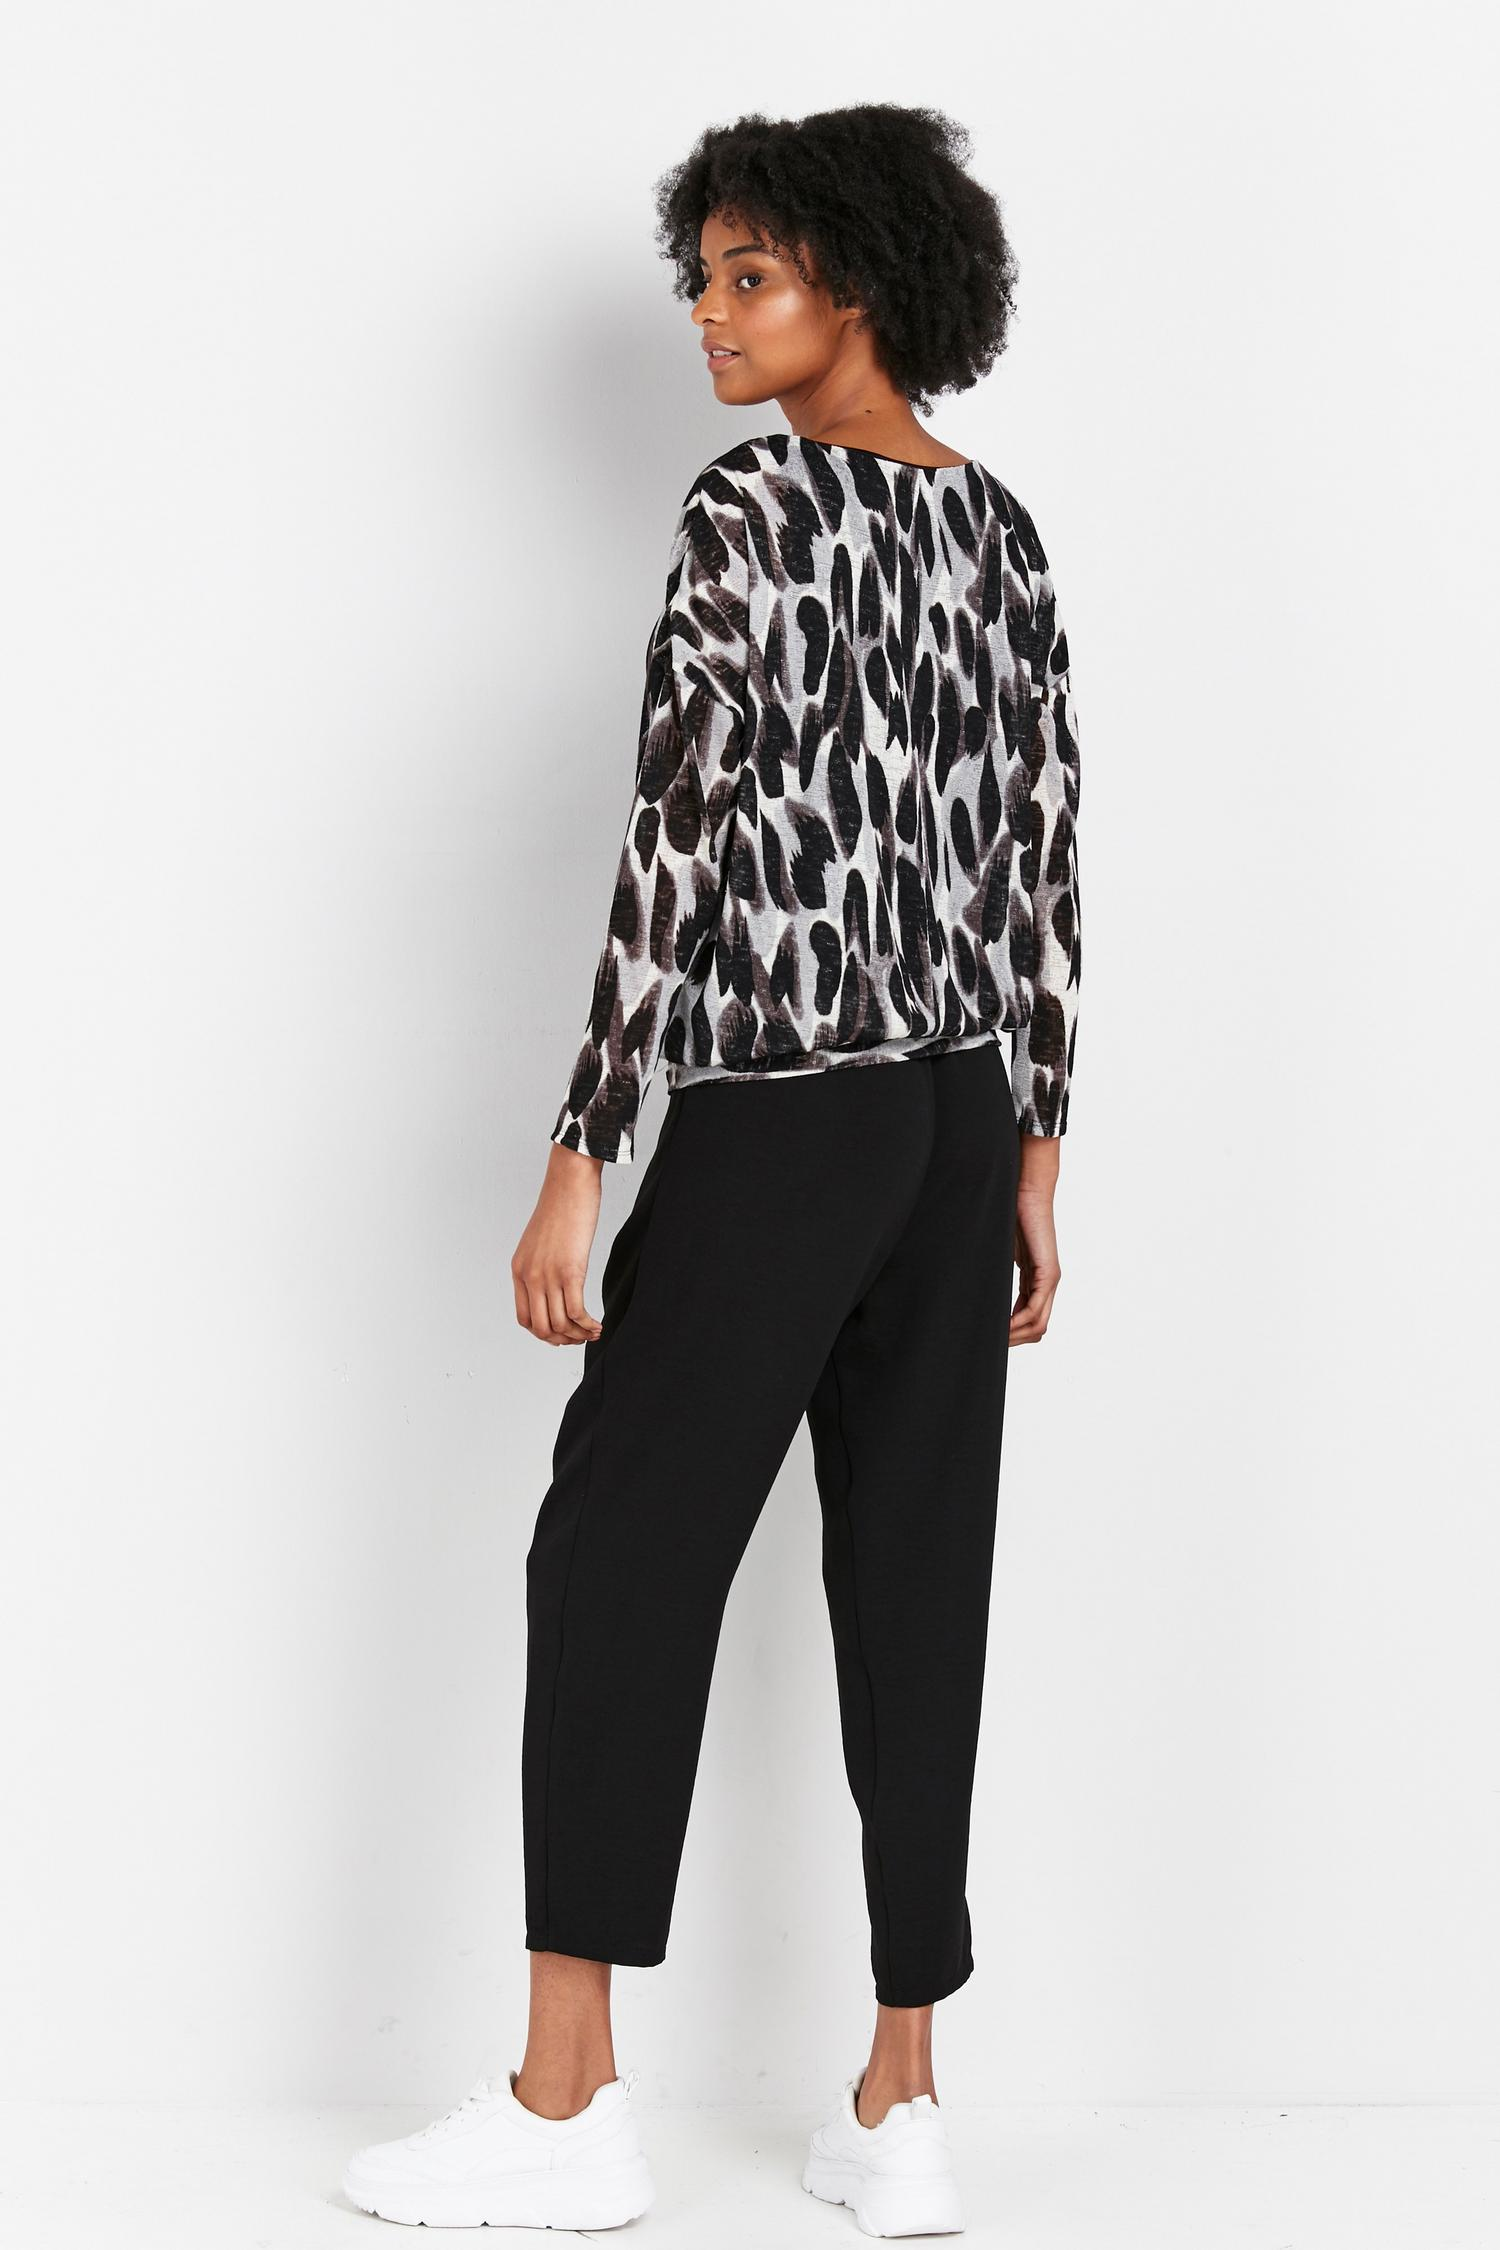 105 Black Animal Print Batwing Top image number 2